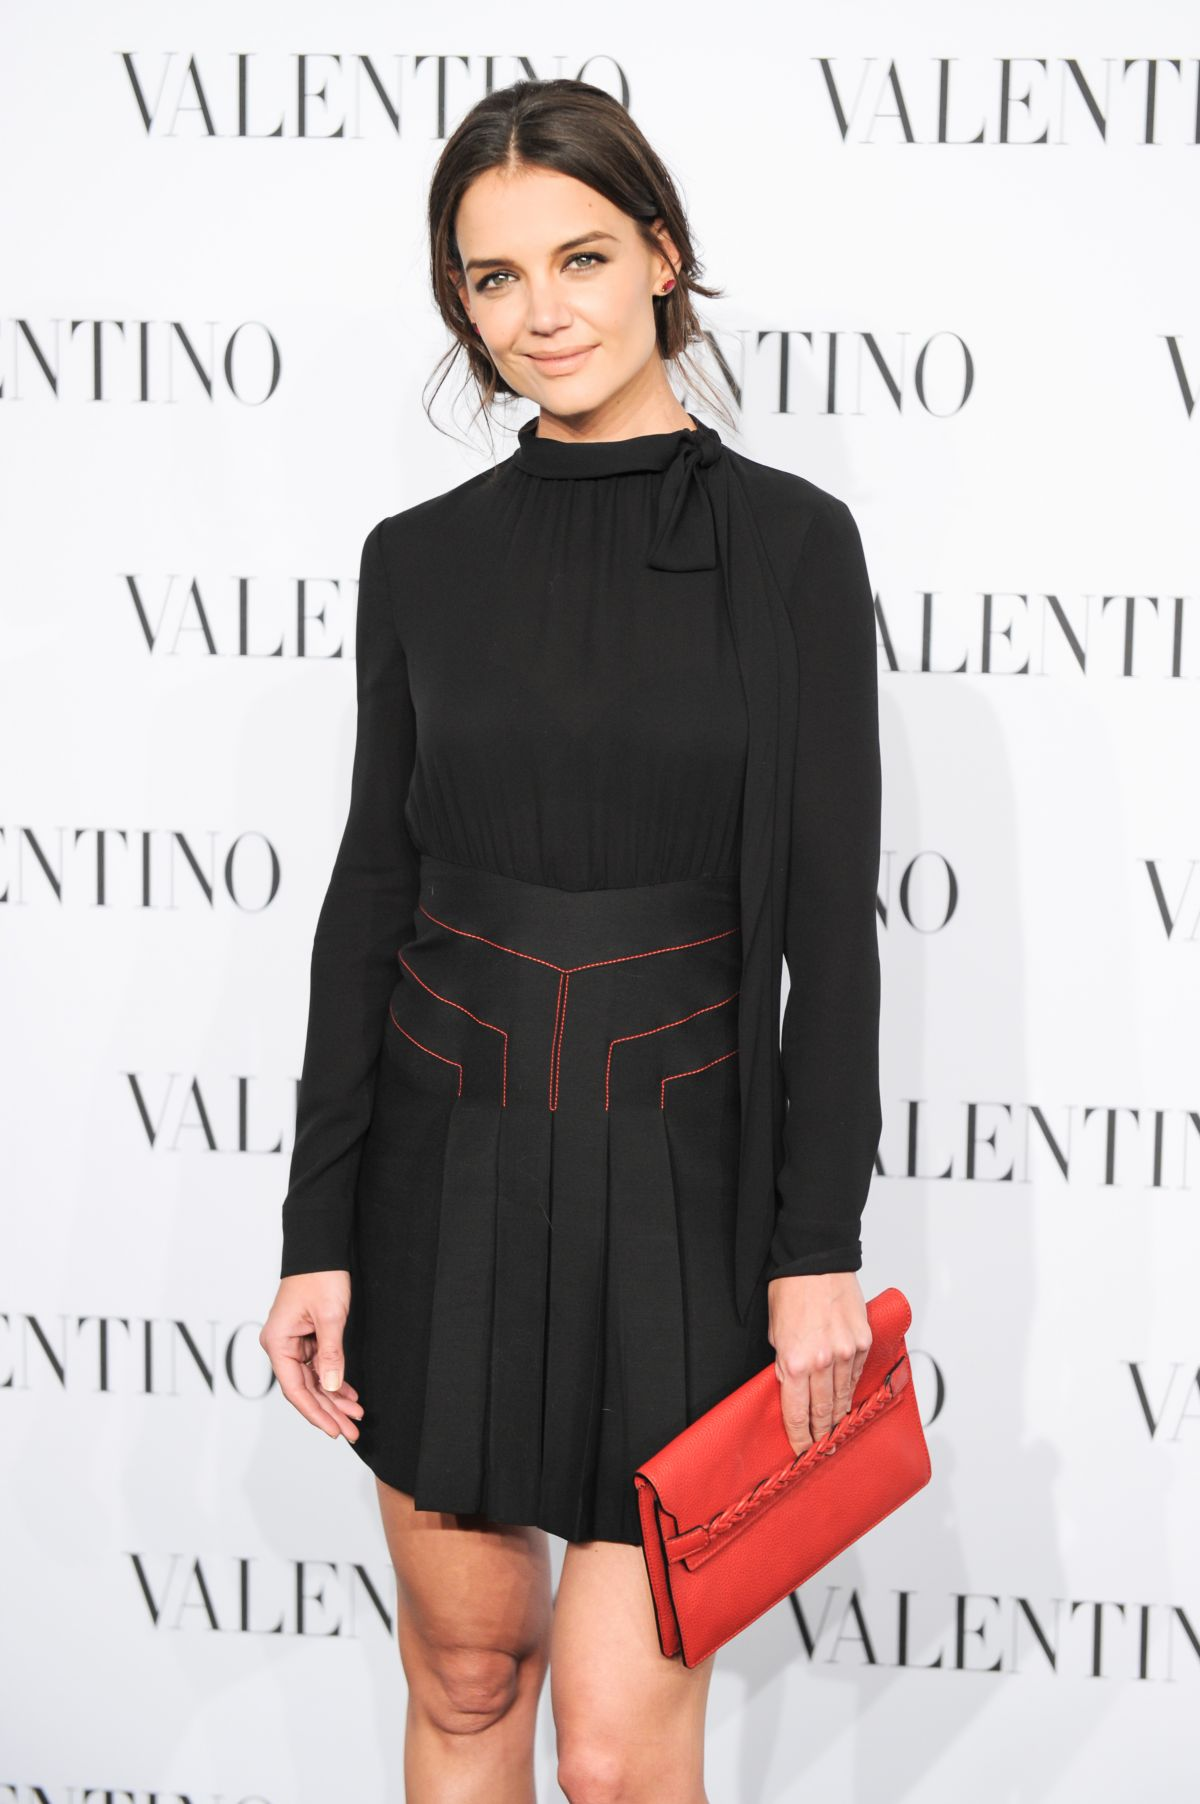 KATIE HOLMES at Valentino Sala Bianca 945 Event in New York